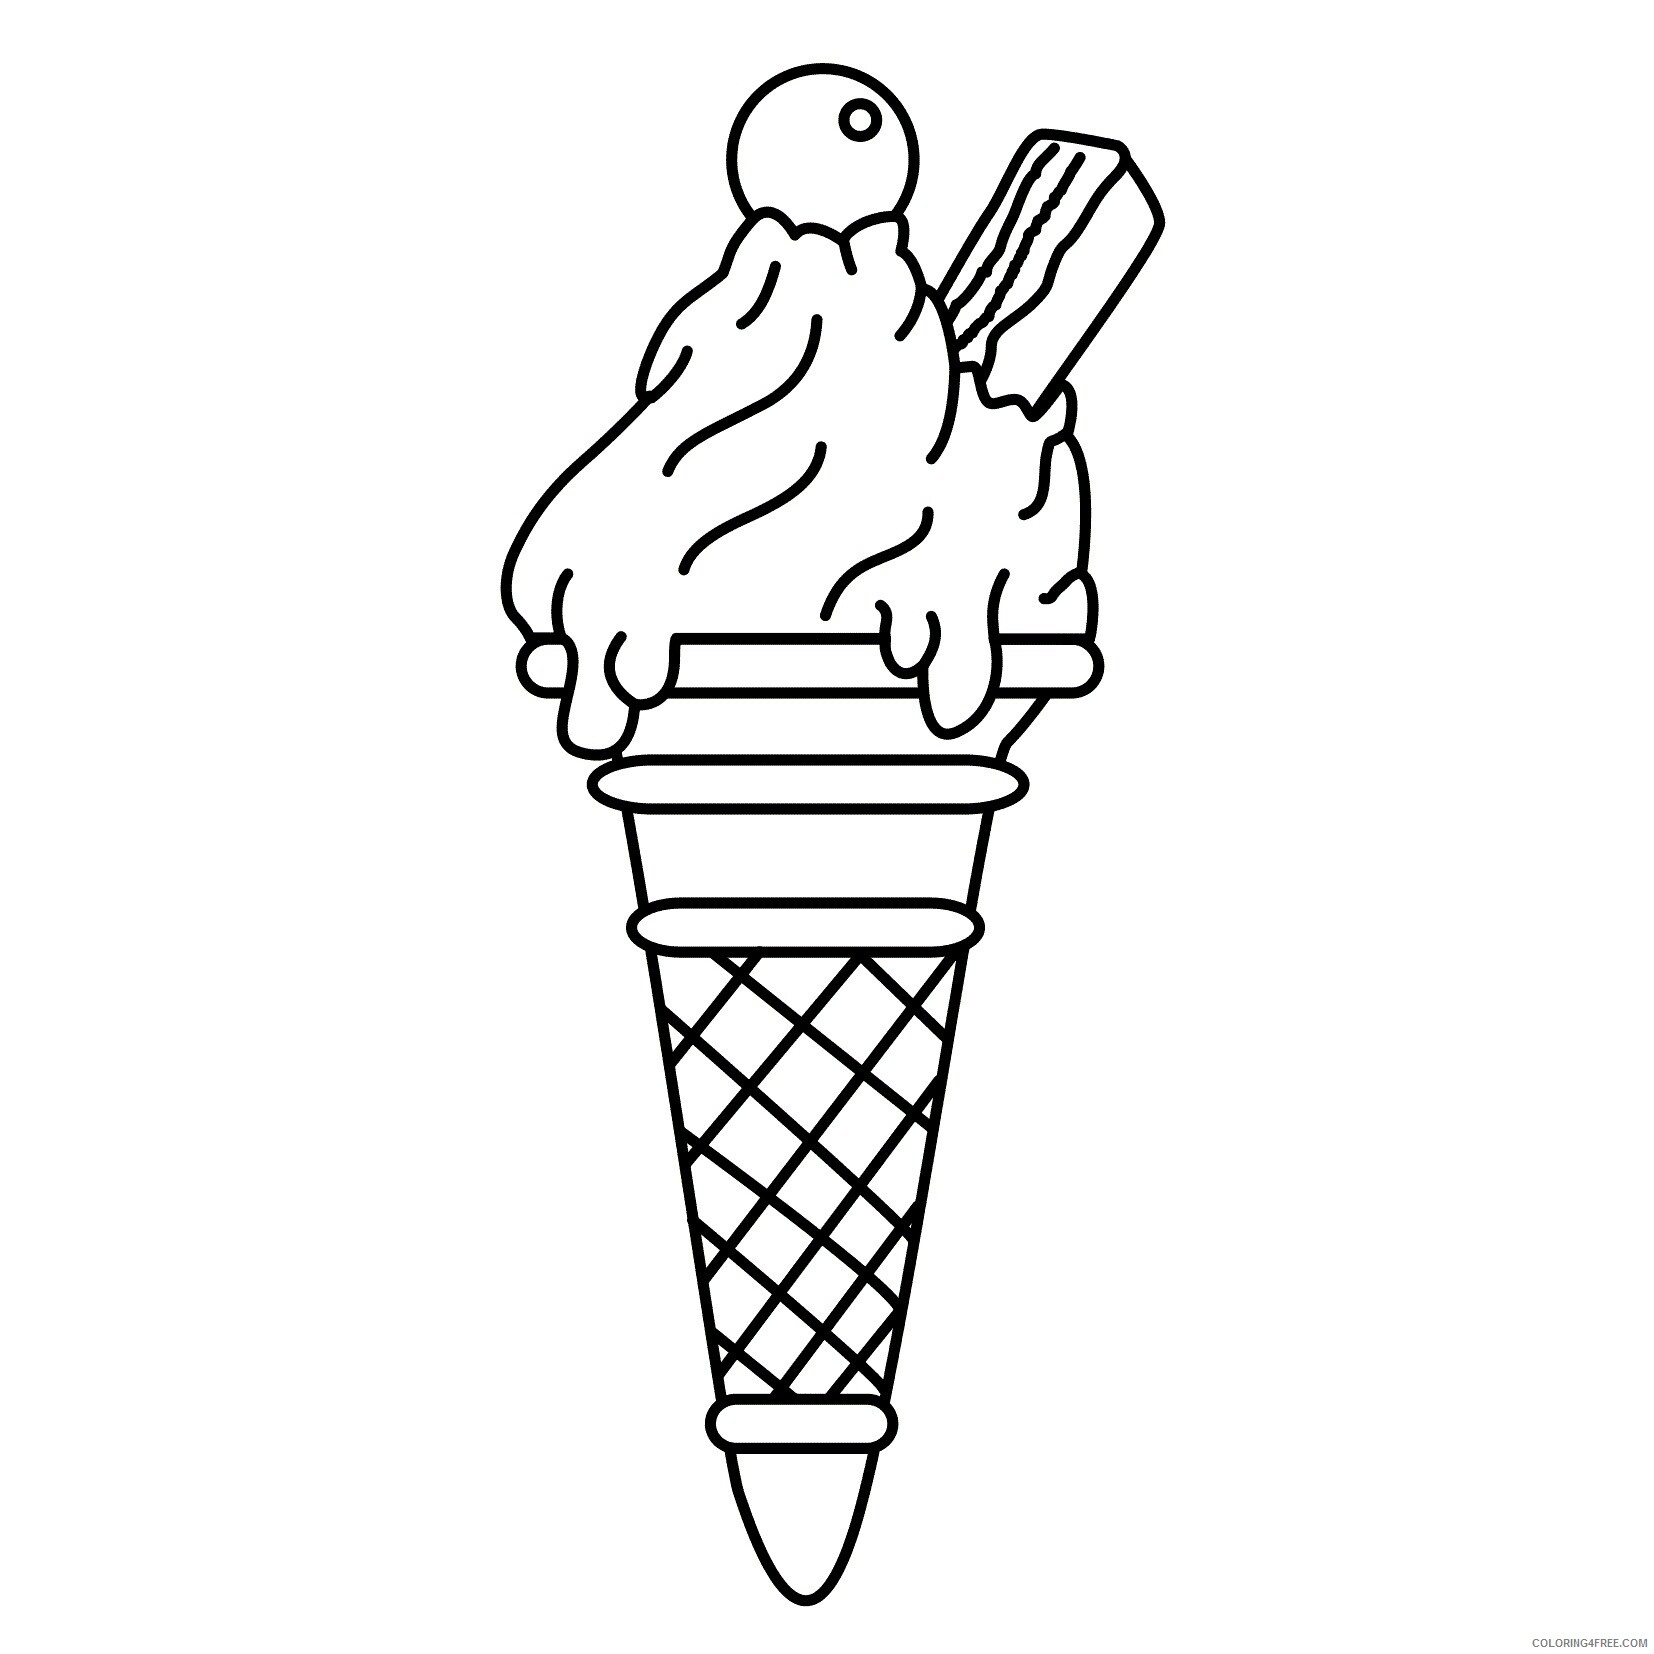 Ice Cream Coloring Pages for Kids Printable Ice Cream Printable 2021 407 Coloring4free